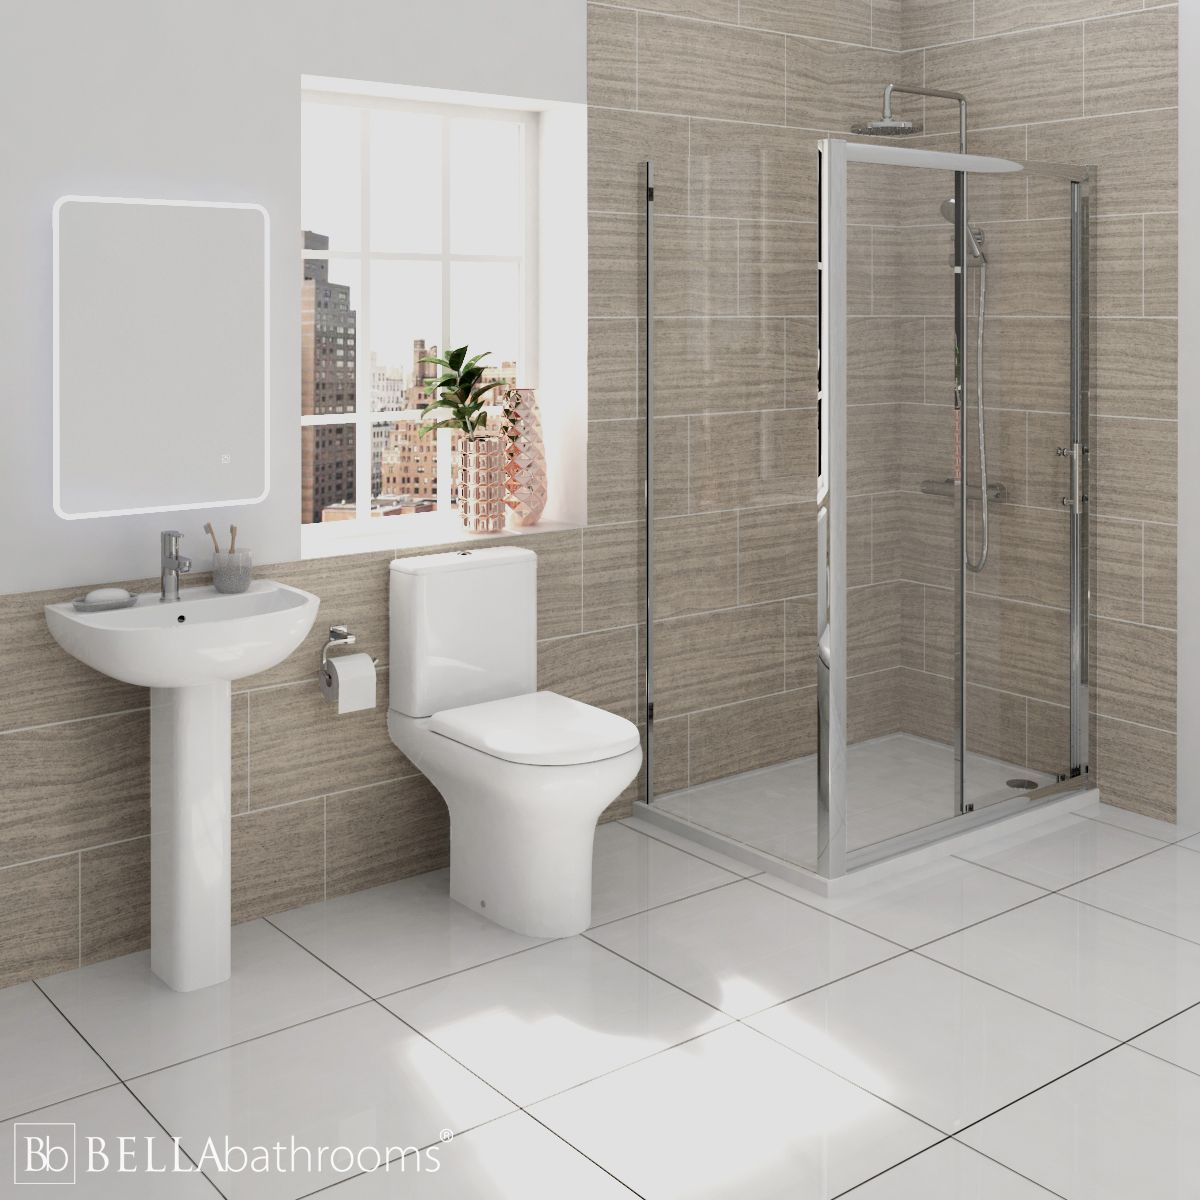 RAK Compact Shower Suite with Pacific Sliding Door Shower Enclosure